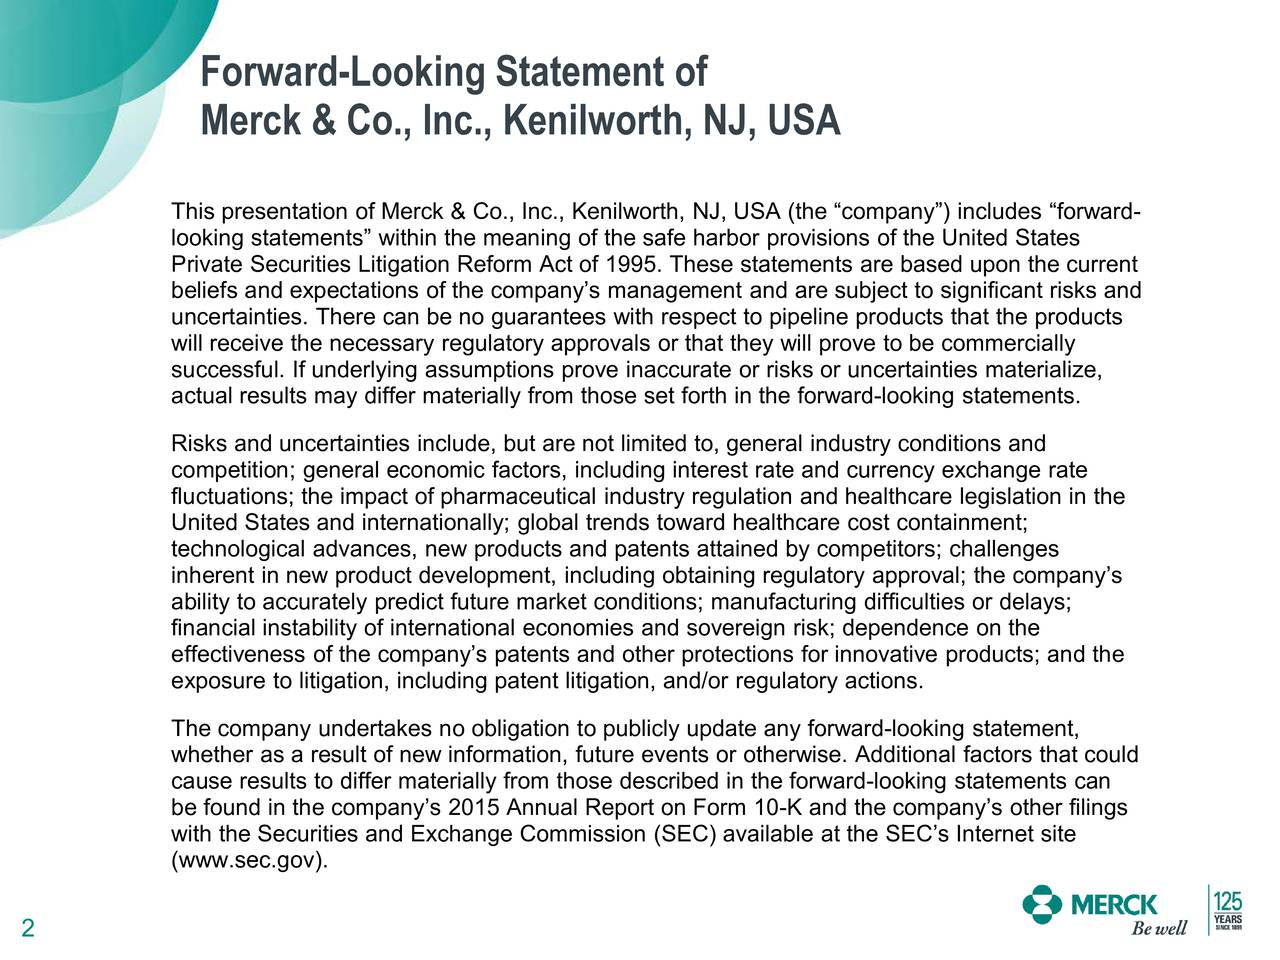 Merck & Co., Inc., Kenilworth, NJ, USA This presentation of Merck & Co., Inc., Kenilworth, NJ, USA (the company) includes forward- looking statements within the meaning of the safe harbor provisions of the United States Private Securities Litigation Reform Act of 1995. These statements are based upon the current beliefs and expectations of the companys management and are subject to significant risks and uncertainties. There can be no guarantees with respect to pipeline products that the products will receive the necessary regulatory approvals or that they will prove to be commercially successful. If underlying assumptions prove inaccurate or risks or uncertainties materialize, actual results may differ materially from those set forth in the forward-looking statements. Risks and uncertainties include, but are not limited to, general industry conditions and competition; general economic factors, including interest rate and currency exchange rate fluctuations; the impact of pharmaceutical industry regulation and healthcare legislation in the United States and internationally; global trends toward healthcare cost containment; technological advances, new products and patents attained by competitors; challenges inherent in new product development, including obtaining regulatory approval; the companys ability to accurately predict future market conditions; manufacturing difficulties or delays; financial instability of international economies and sovereign risk; dependence on the effectiveness of the companys patents and other protections for innovative products; and the exposure to litigation, including patent litigation, and/or regulatory actions. The company undertakes no obligation to publicly update any forward-looking statement, whether as a result of new information, future events or otherwise. Additional factors that could cause results to differ materially from those described in the forward-looking statements can be found in the companys 2015 Annual Report on Form